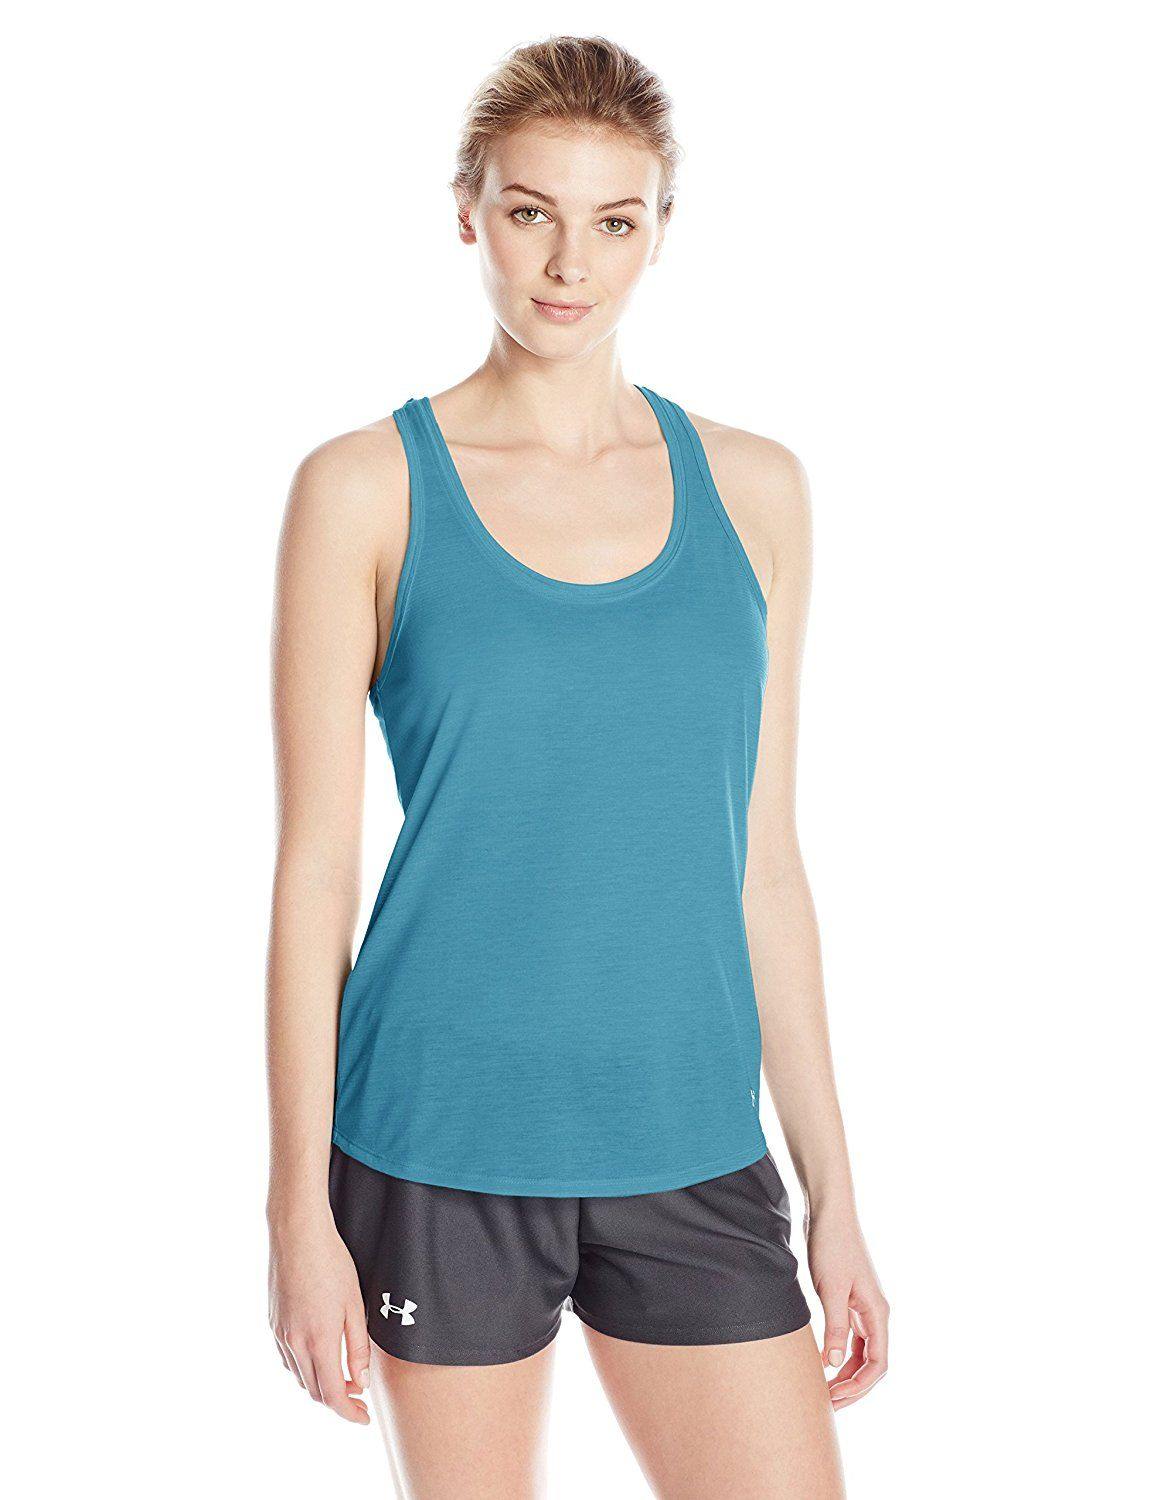 Under Armour Women's Streaker Tank ** You can find more